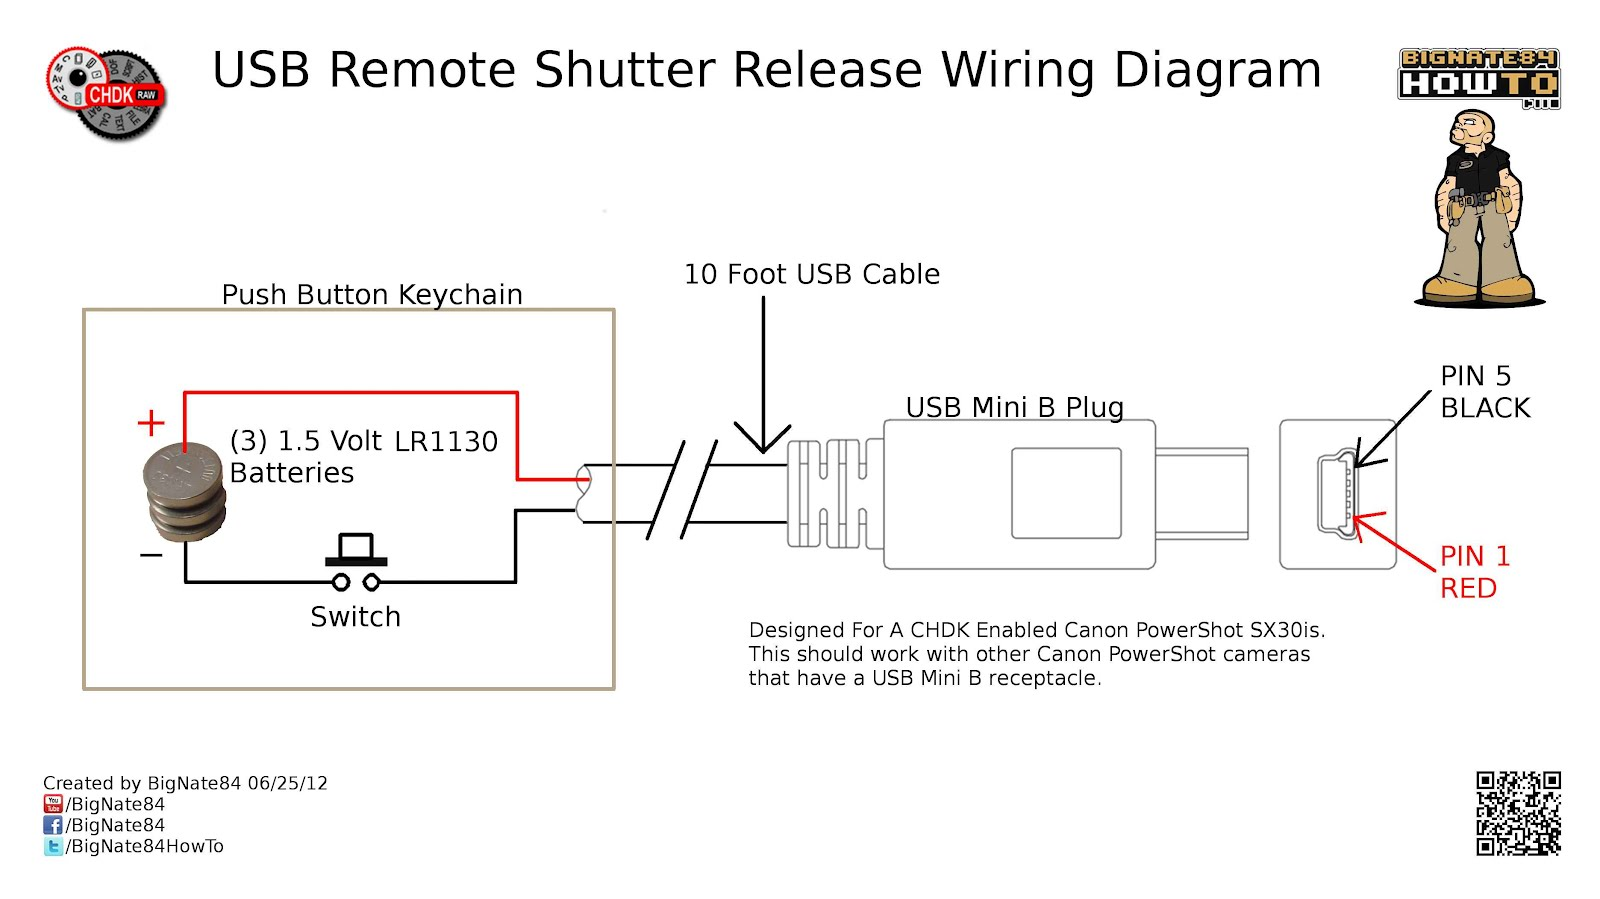 0001 USB Remote Shutter Wiring Diagram -1.jpeg